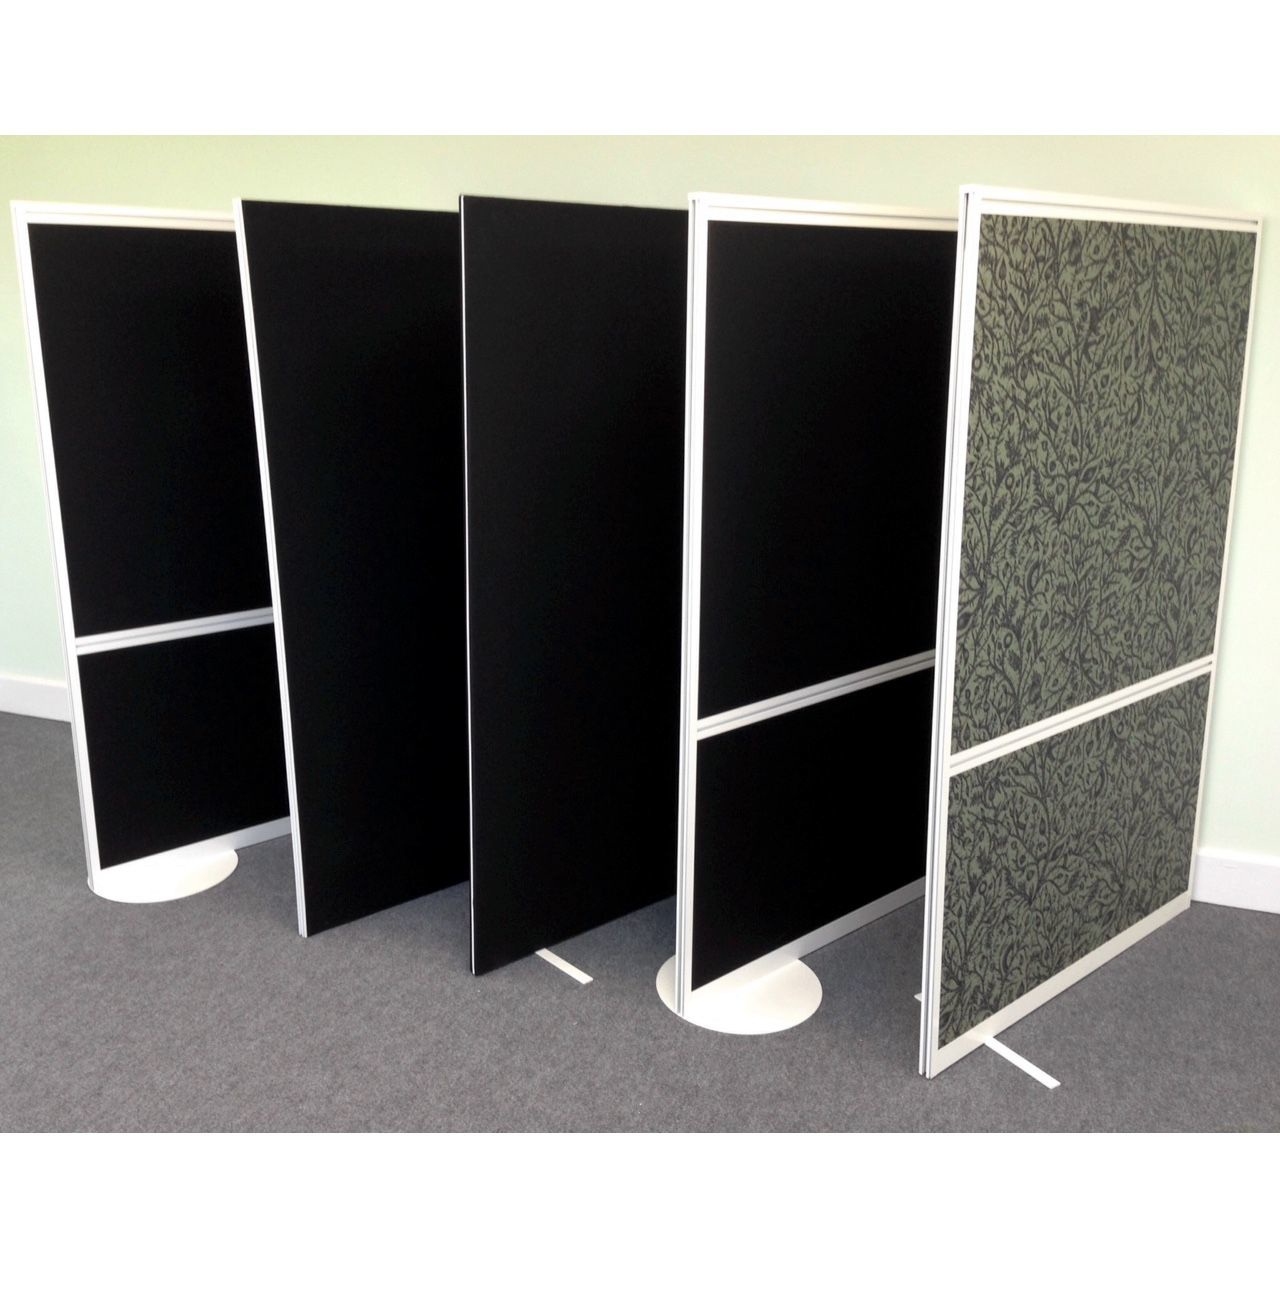 Freestanding Screens  Bristol Office Furniture - Gazelle